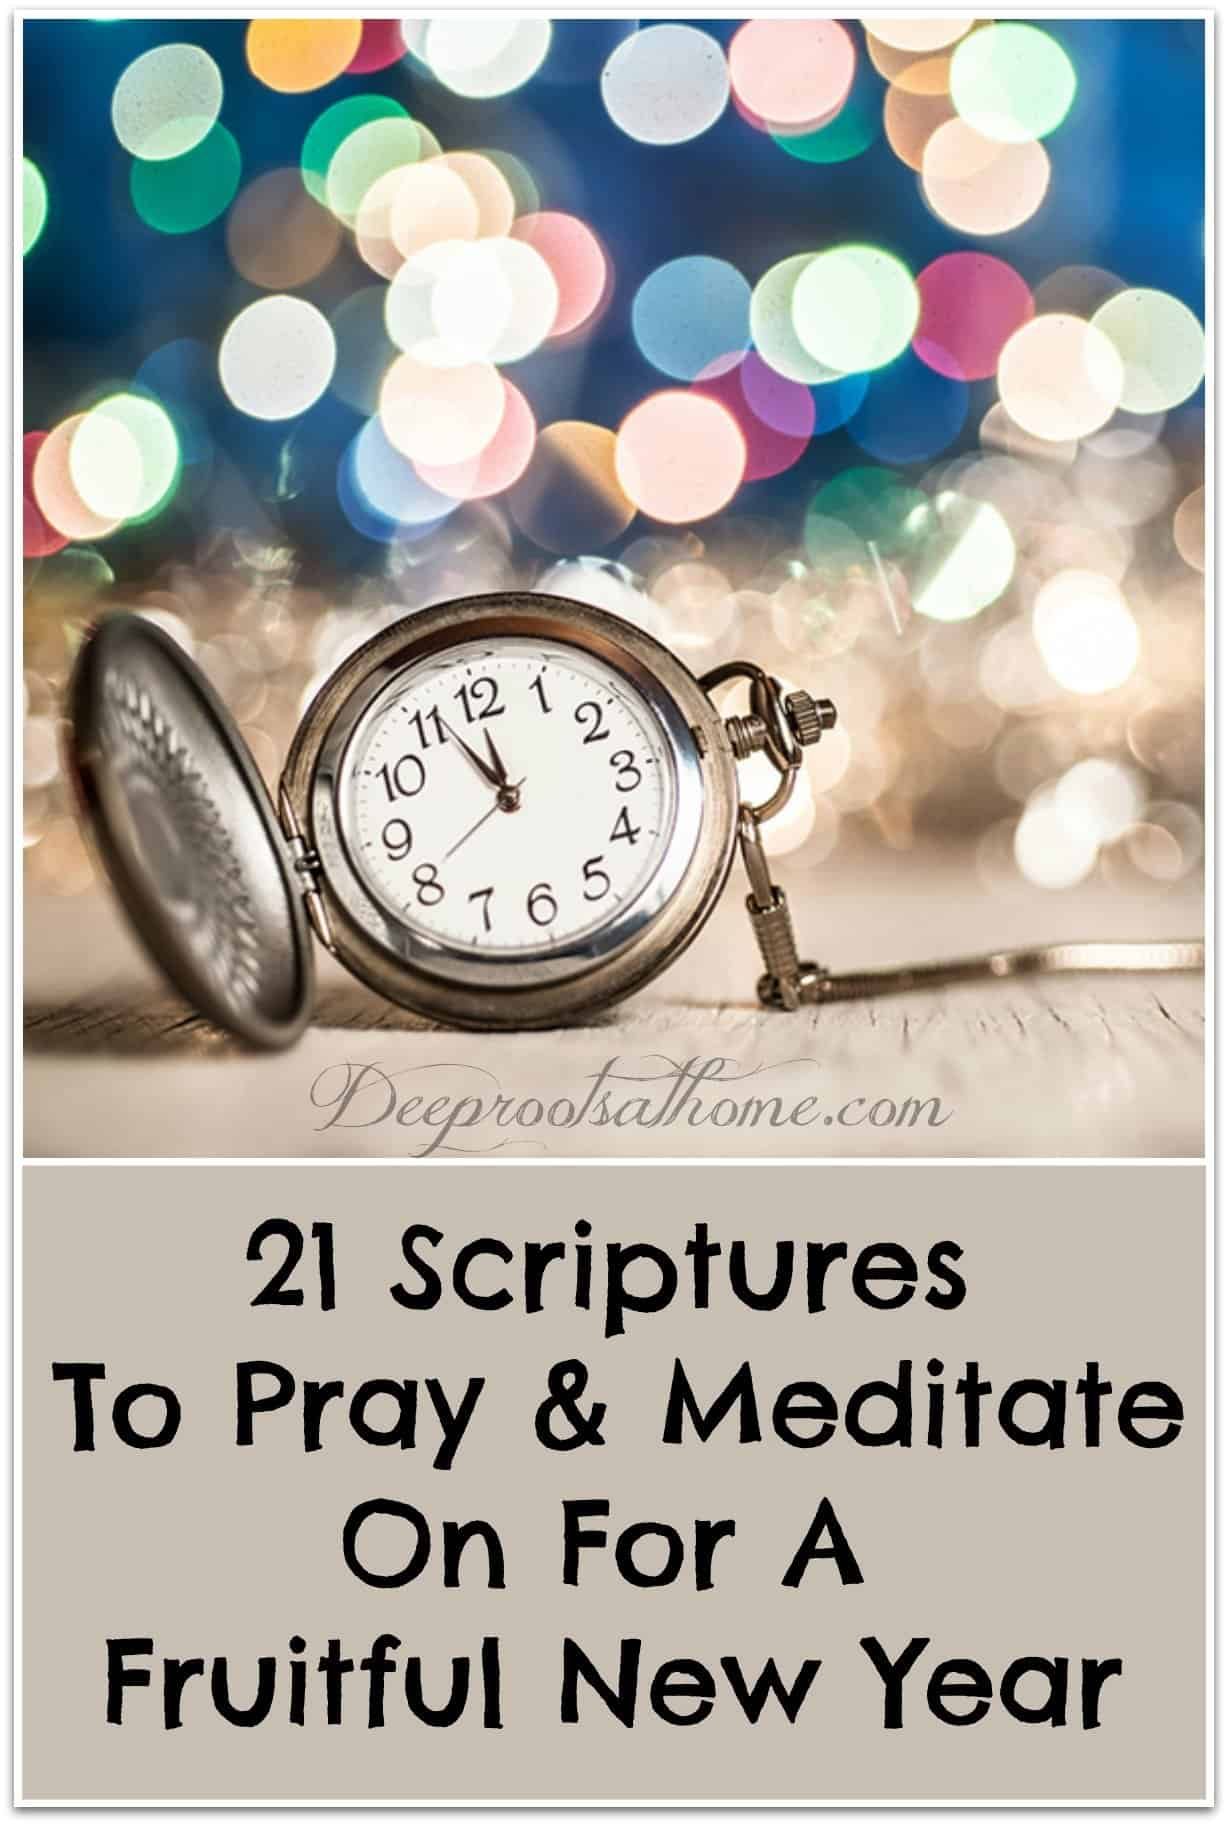 21 Scriptures To Pray & Meditate On For A Fruitful New Year. A pocket watch and bokeh